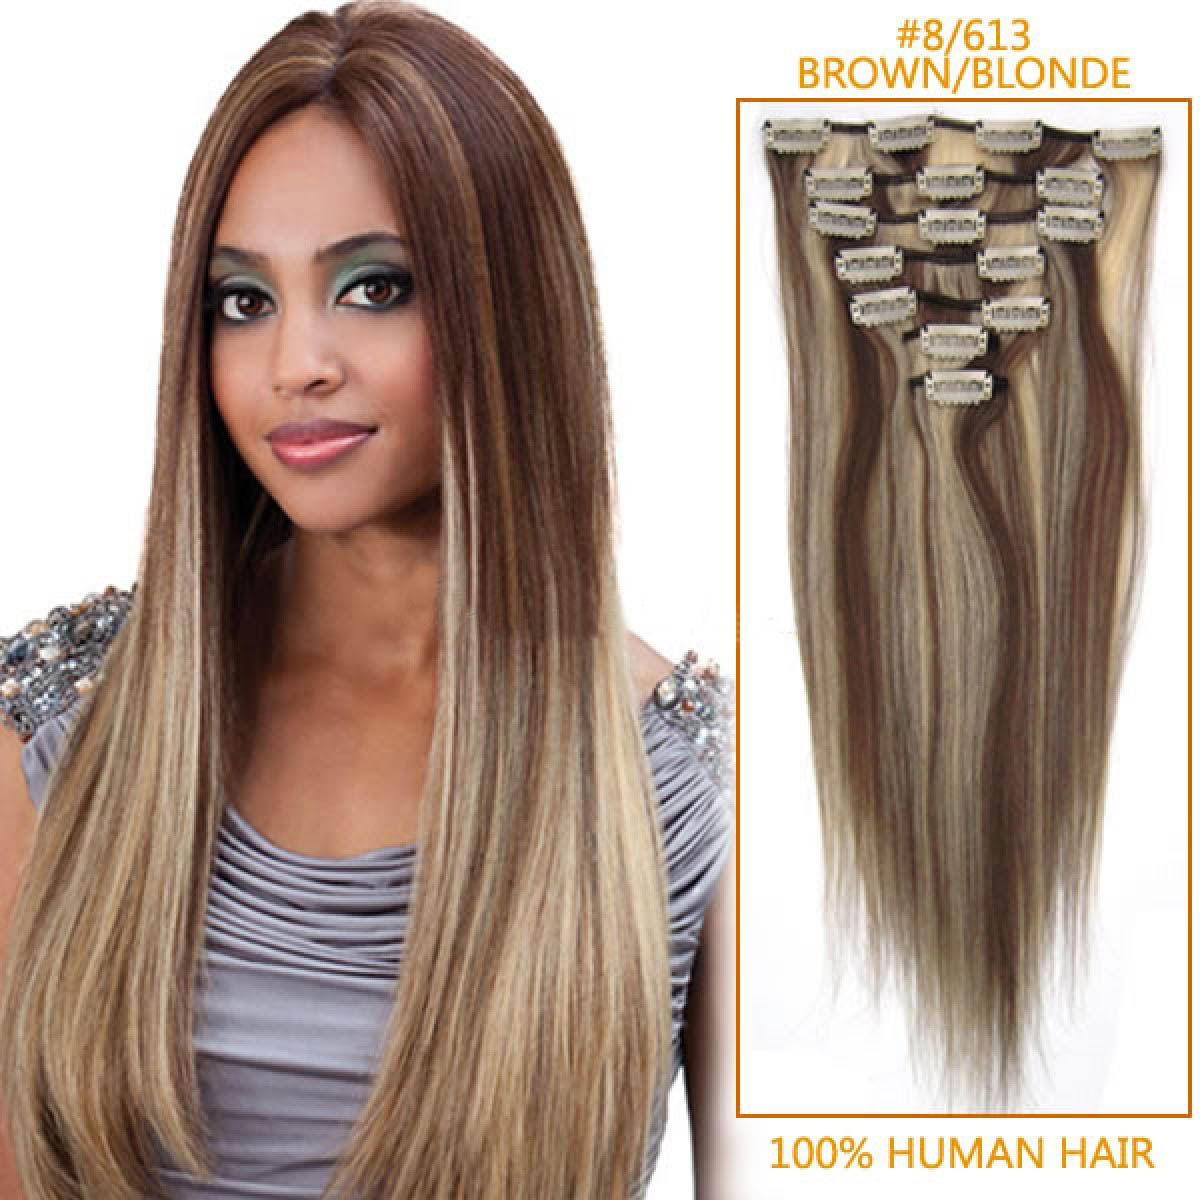 22 inch hair extensions clip in before and after trendy 22 inch hair extensions clip in before and after pmusecretfo Images